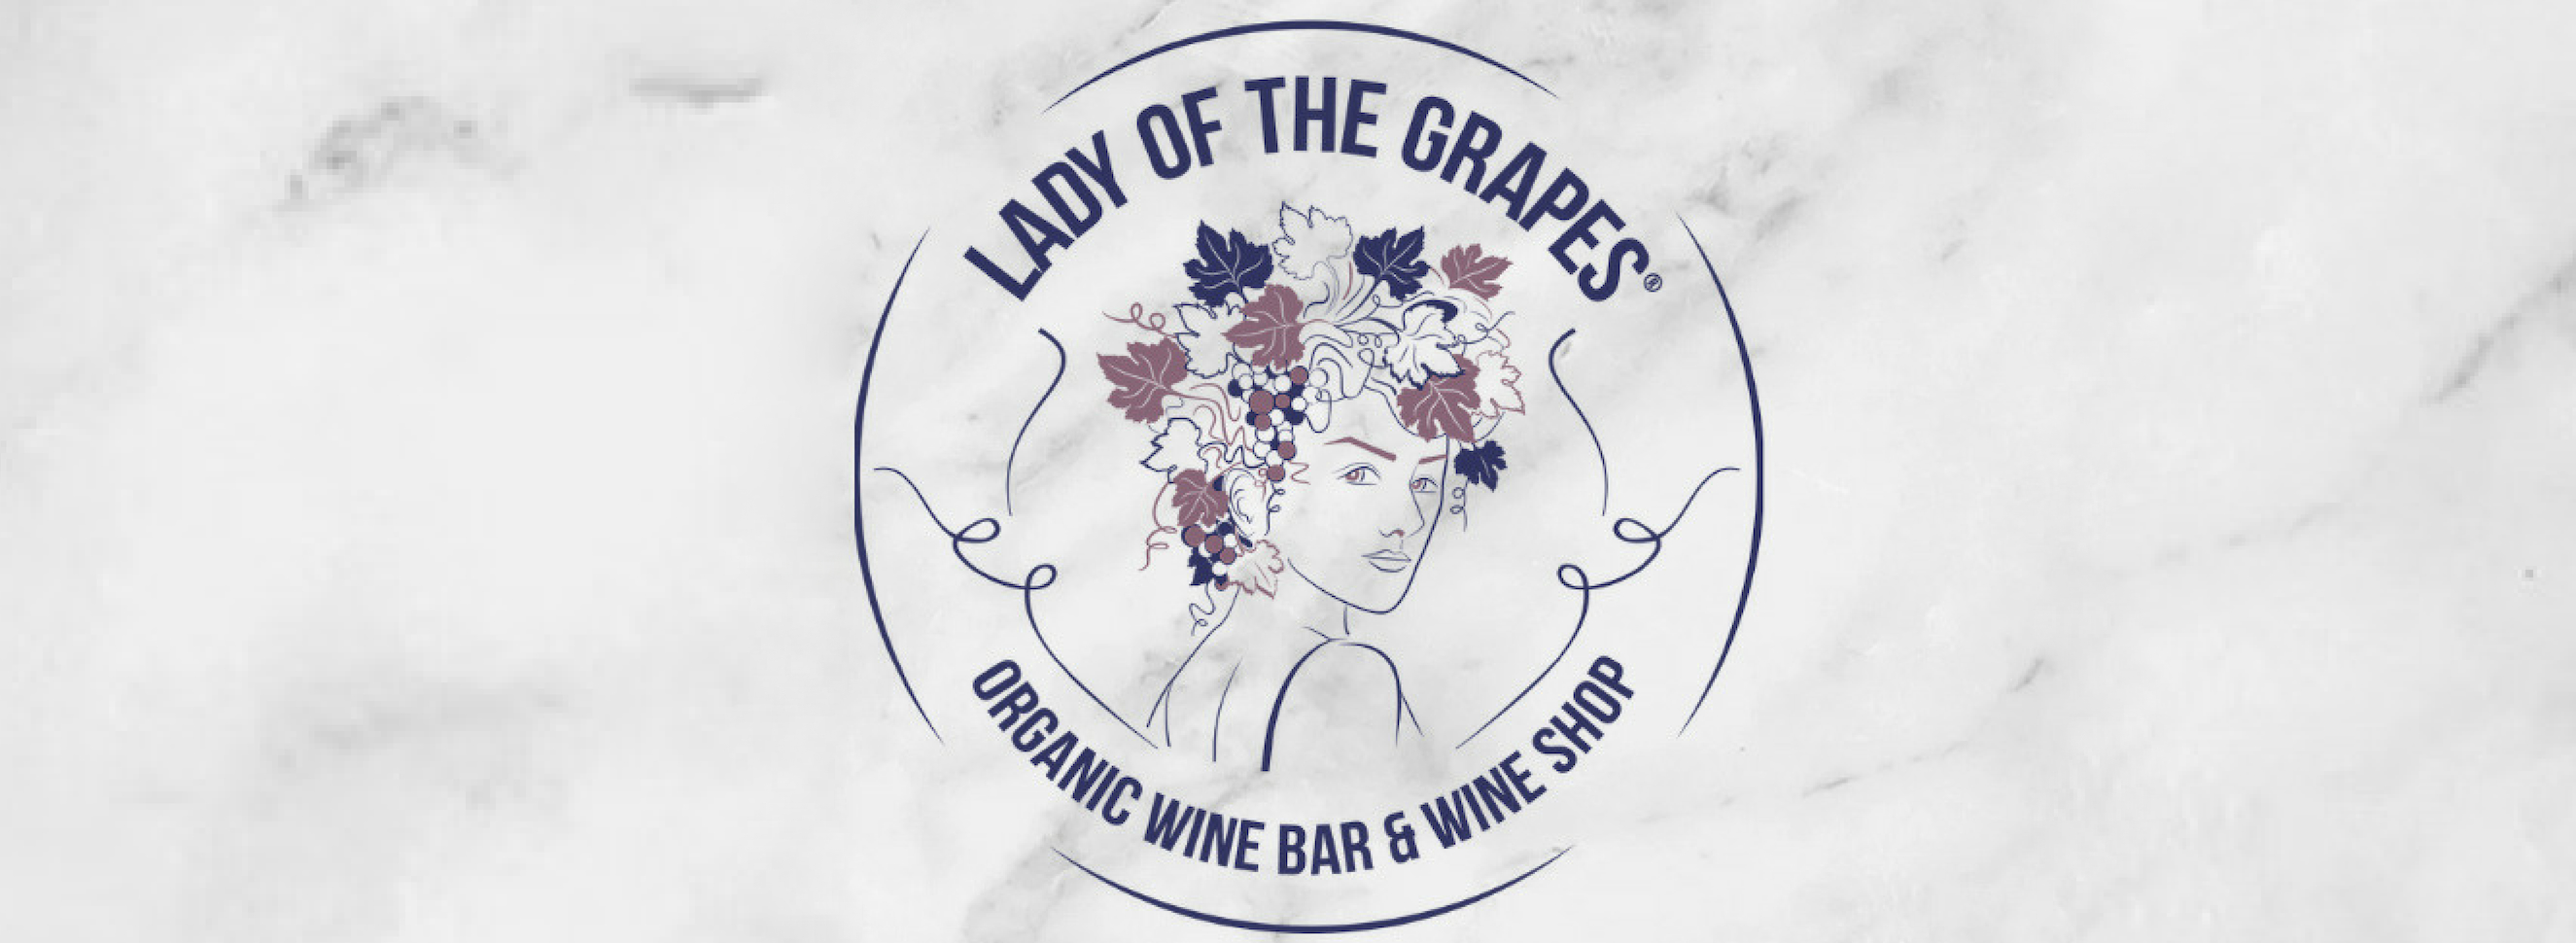 Celebrate International Women's Day with Lady of the Grapes